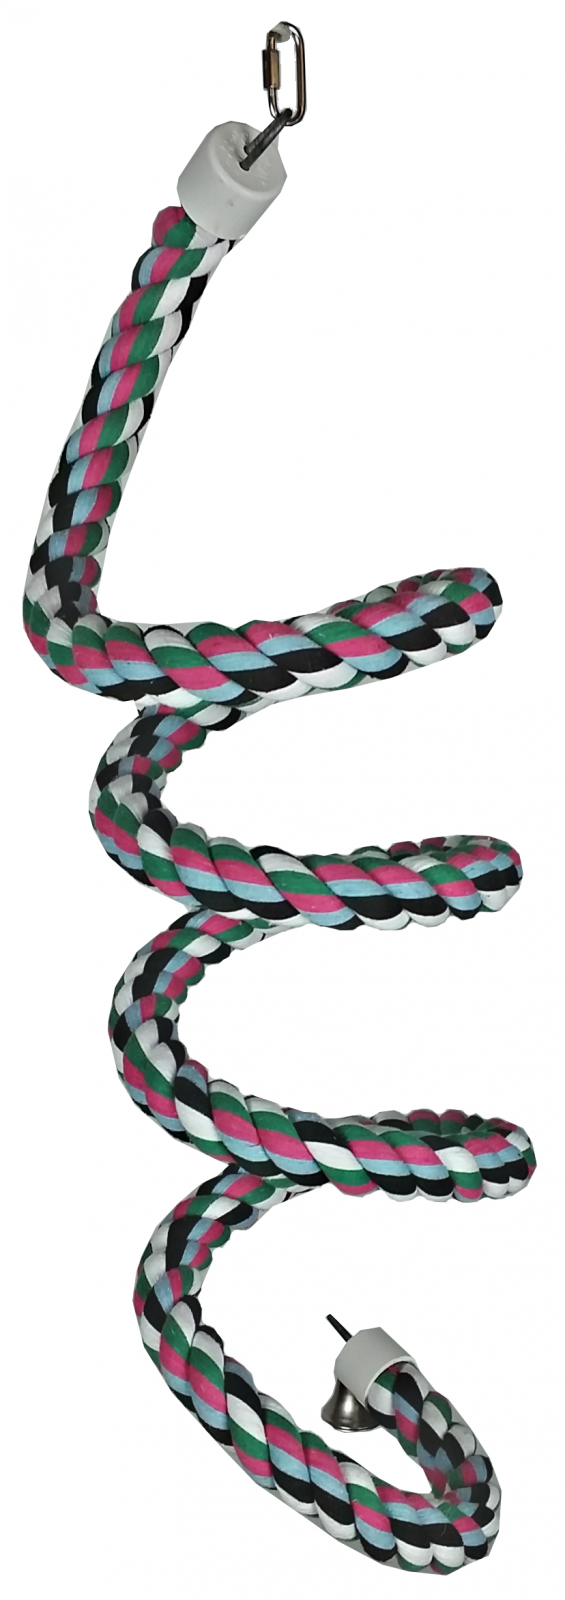 HB556 - Extra Large Cotton Rope Boing with Bell